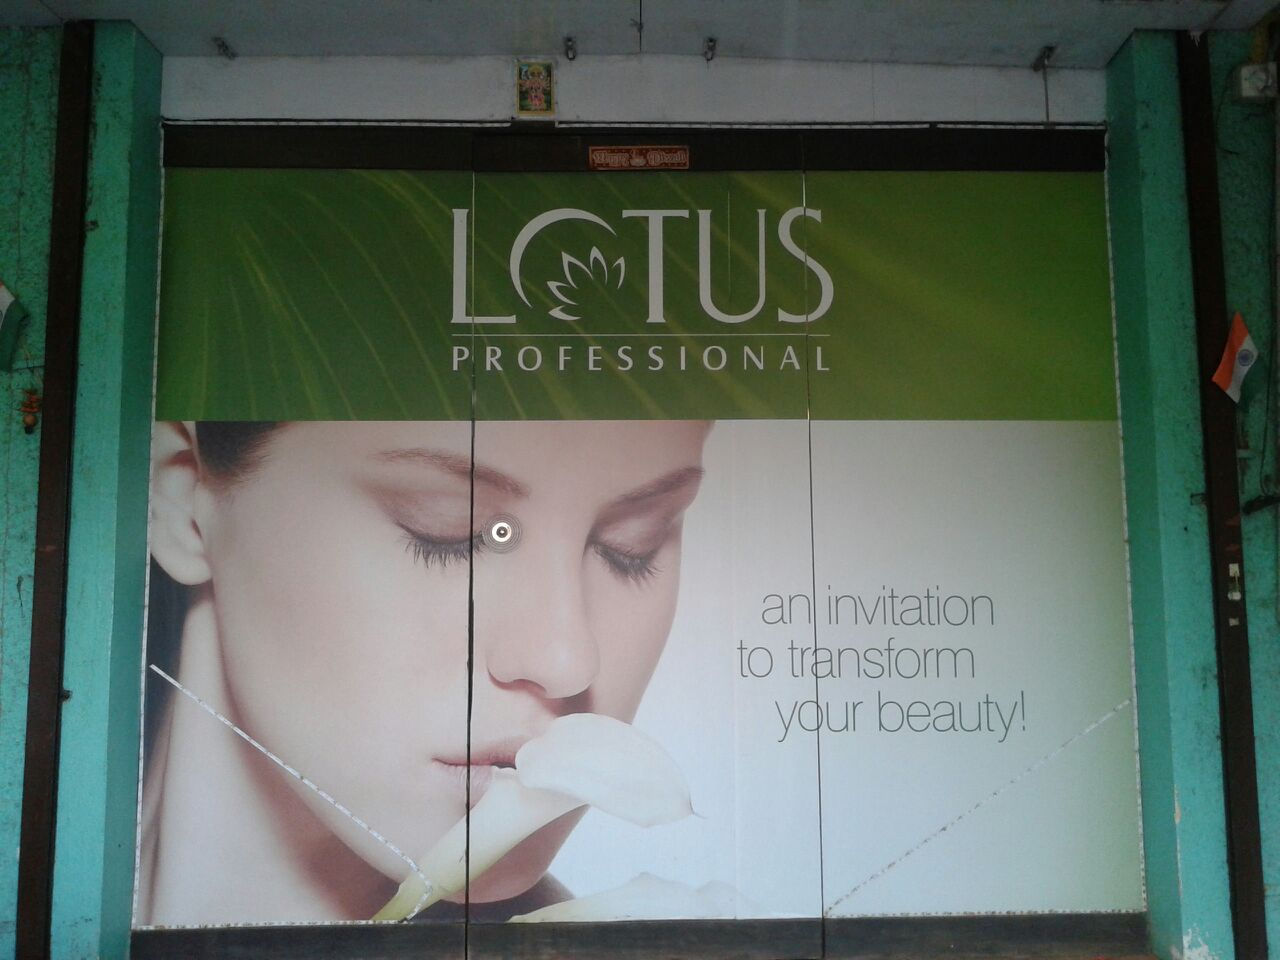 Gents Salon in Goregaon East, Mumbai